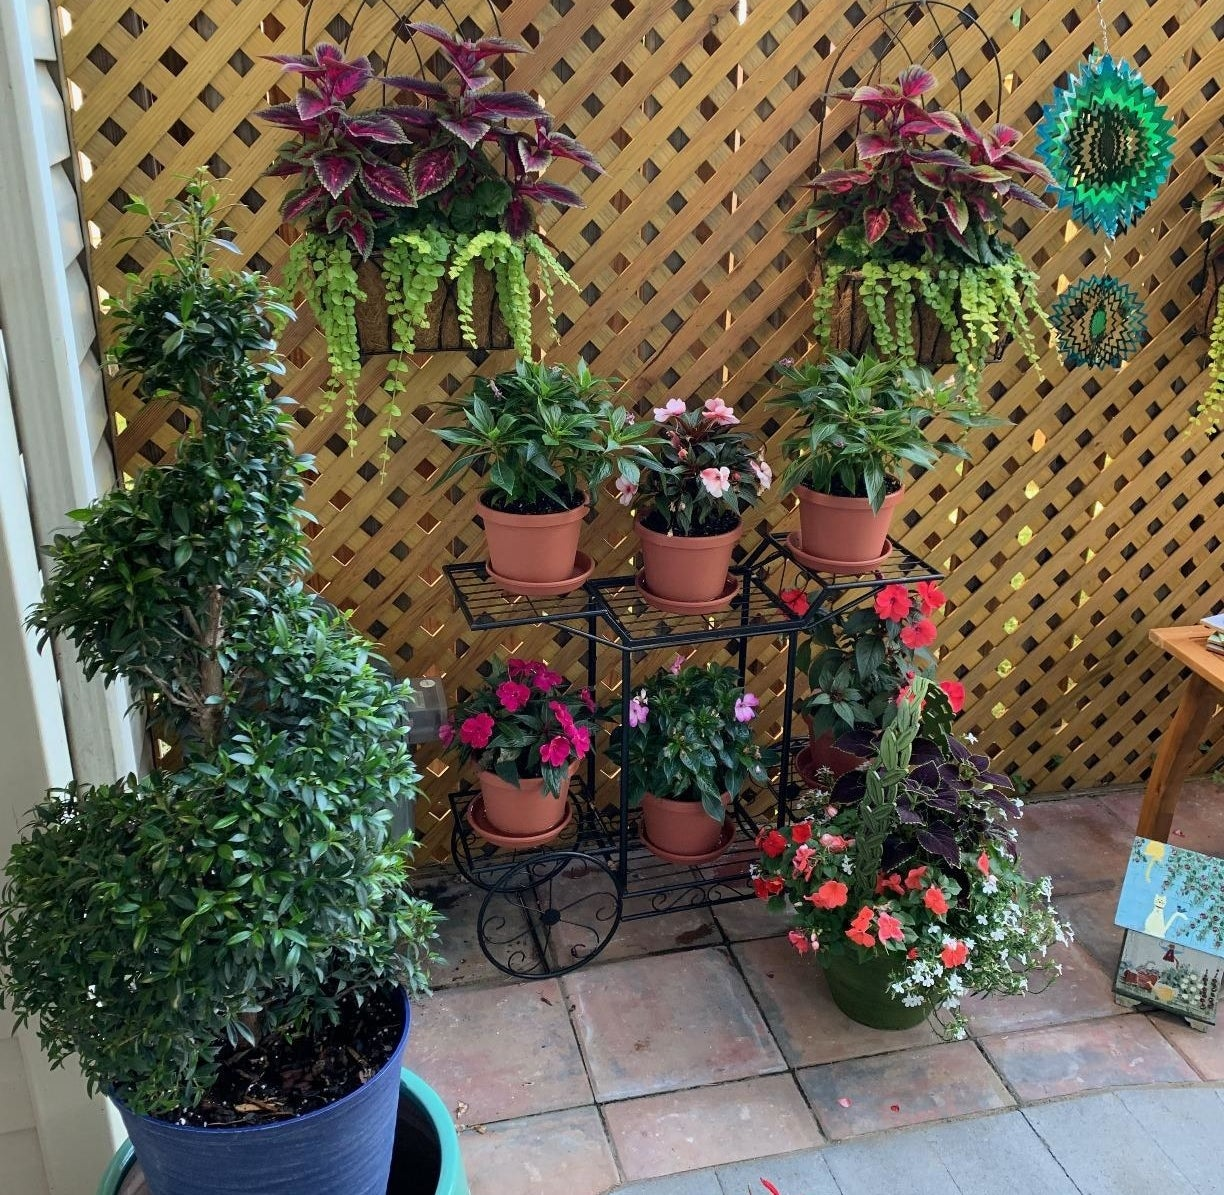 A reviewer photo of the black metal flower cart with several potted plants on the tiers